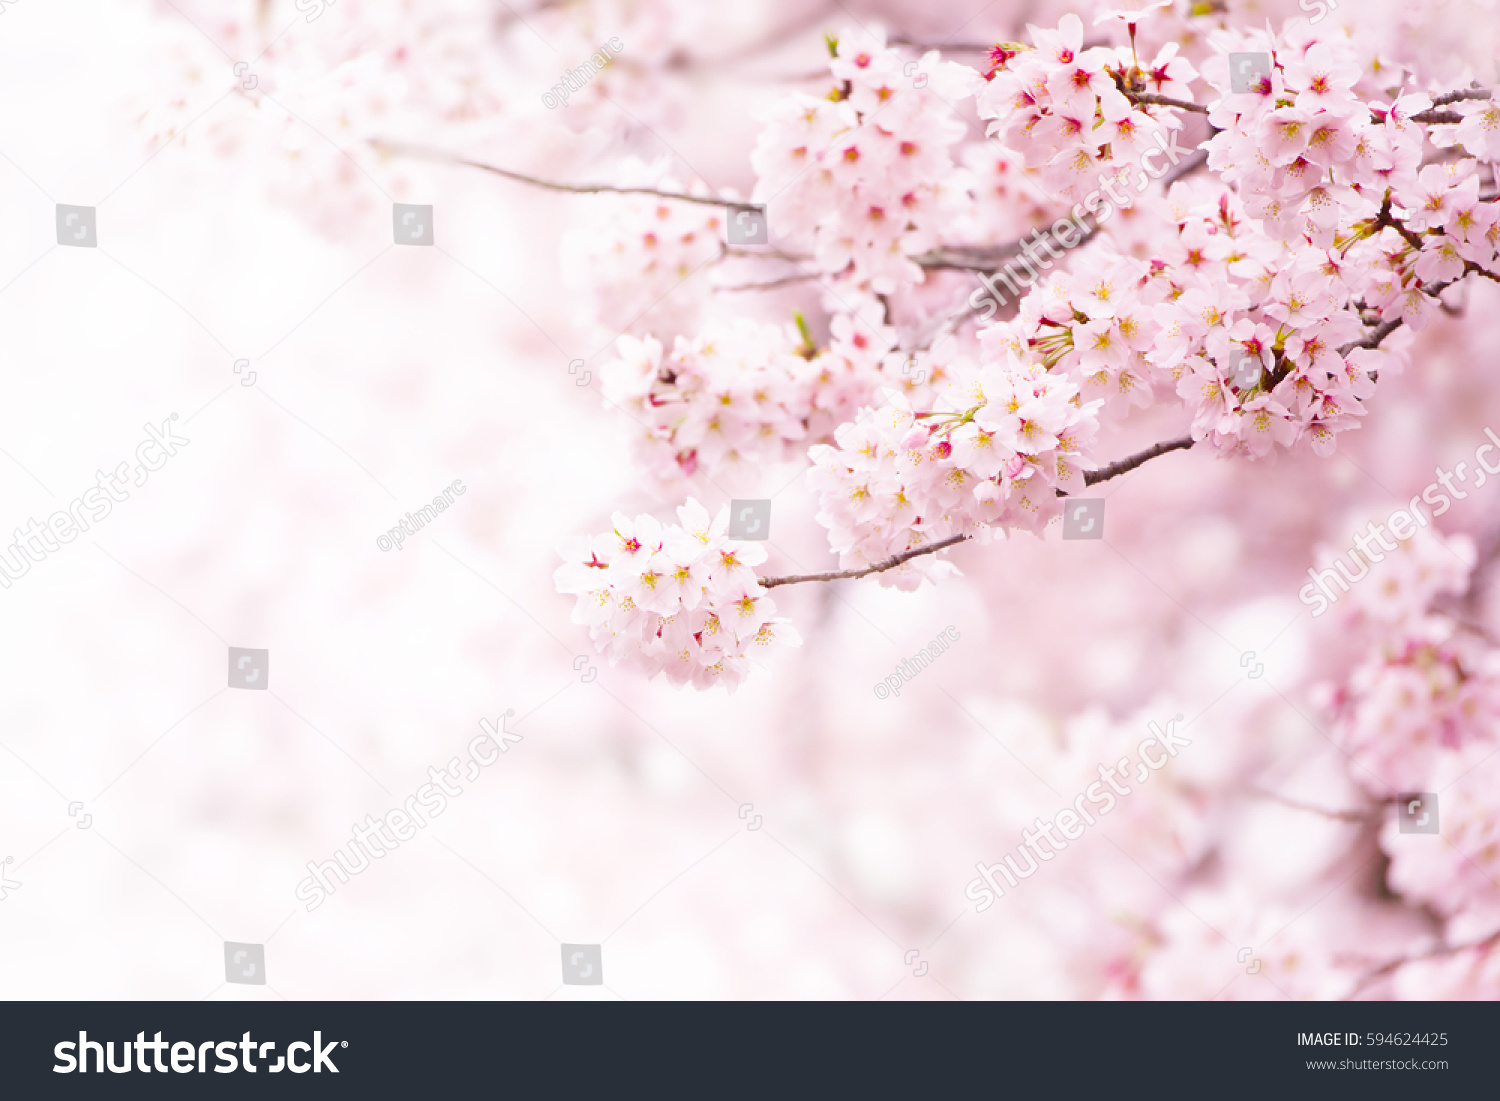 Cherry Blossom Full Bloom Cherry Flowers Stock Photo Royalty Free